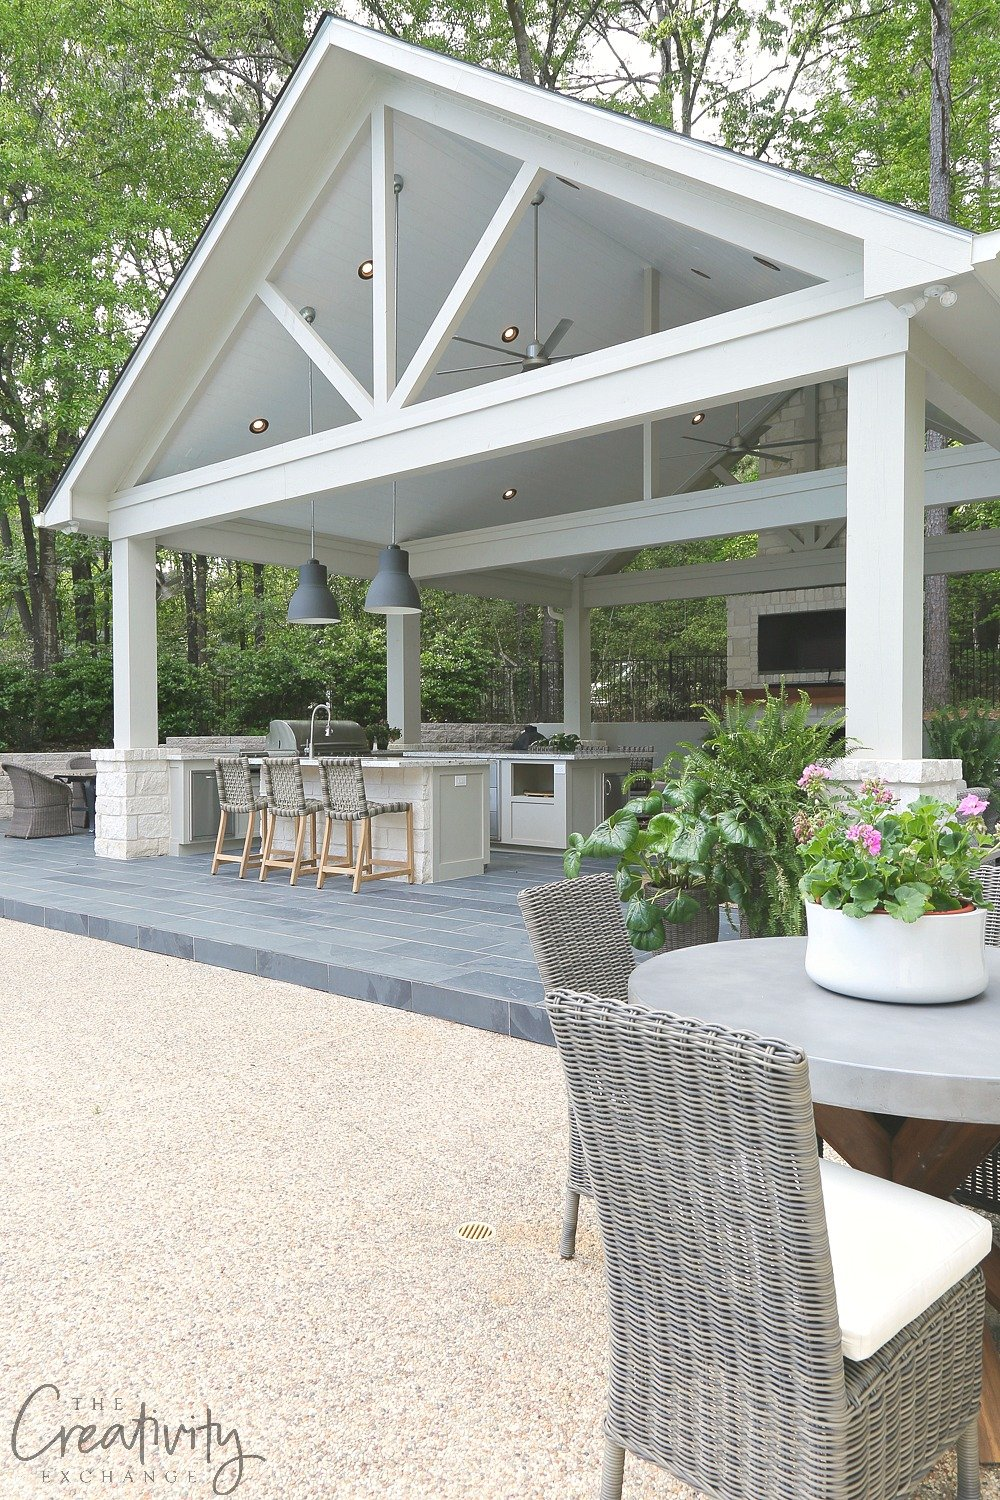 Combination Outdoor kitchen and Pool House Pavilion